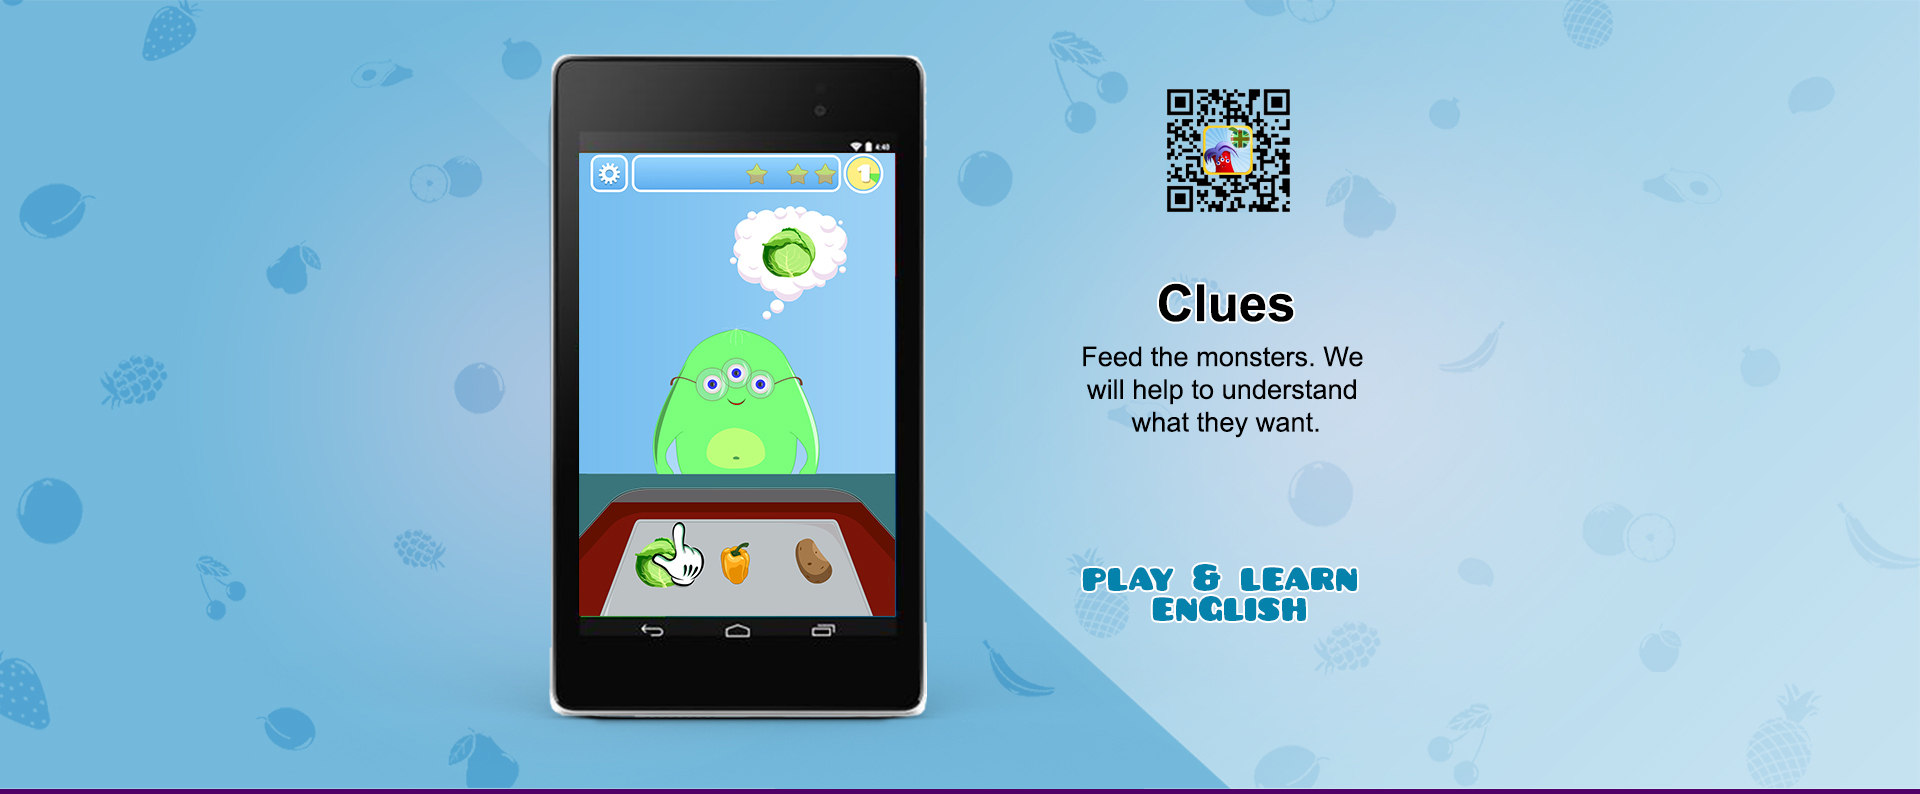 Clues. Feed the monsters. We will help you to understand what they want